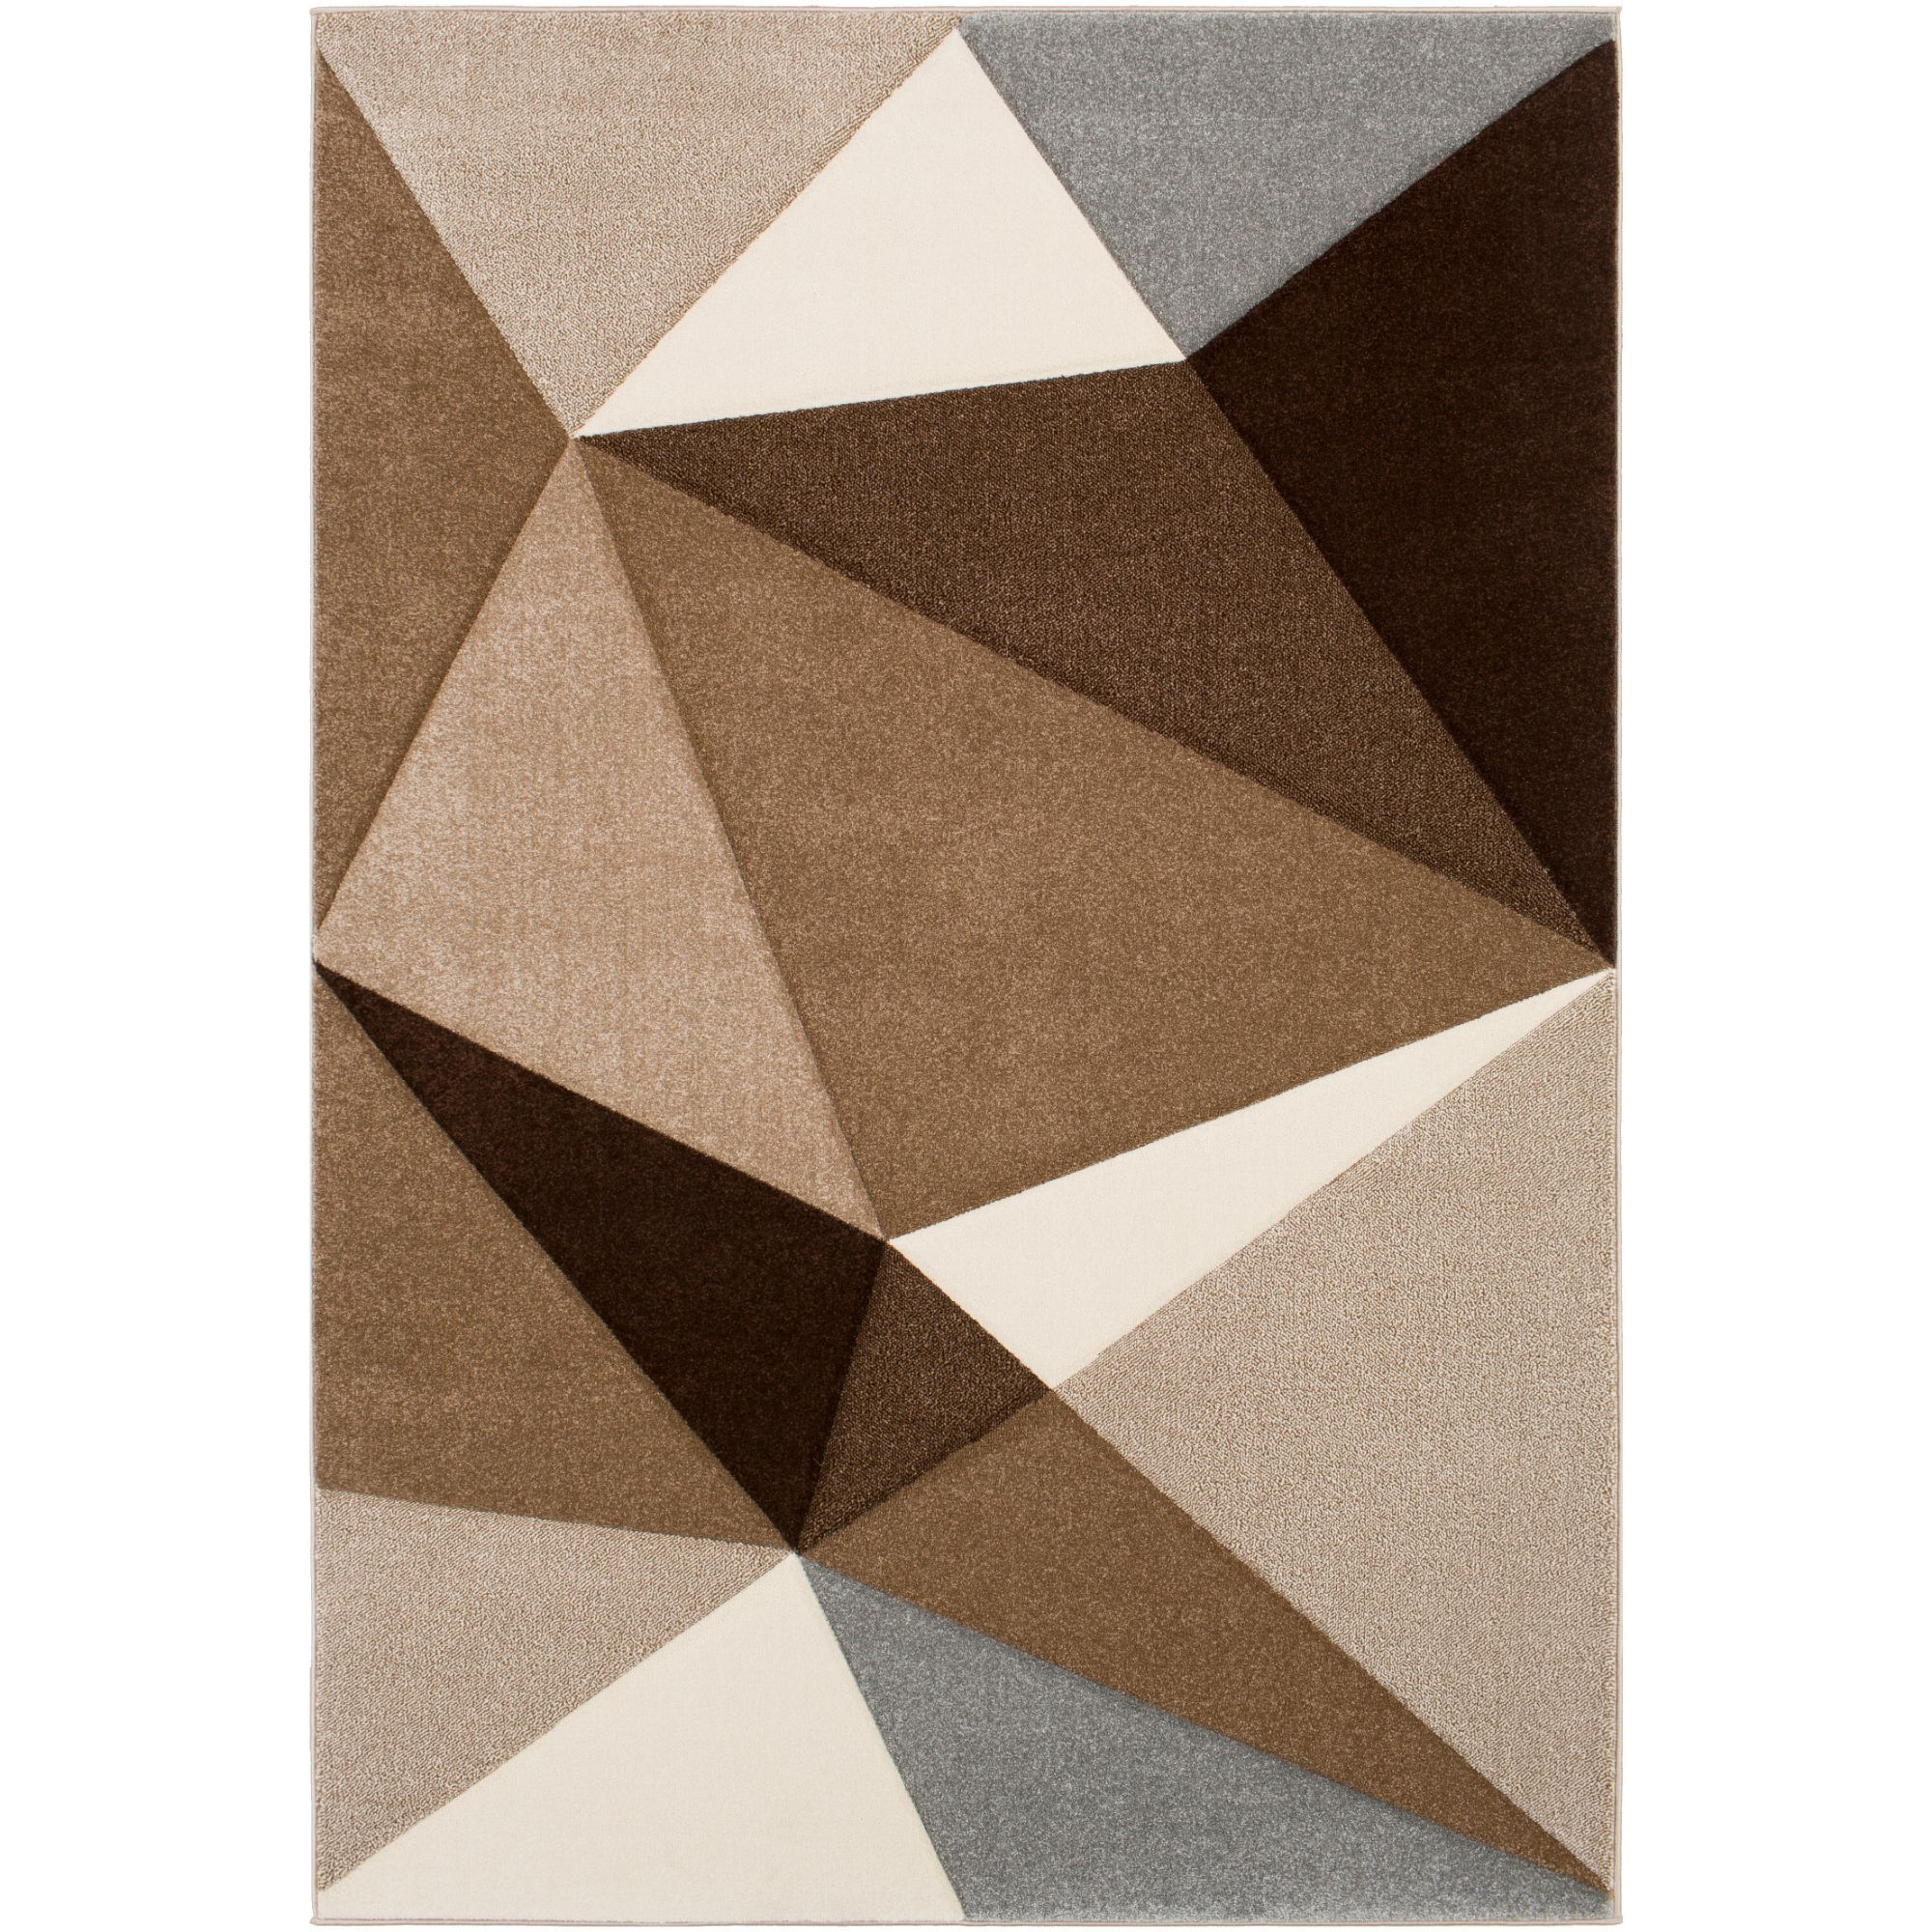 2 5 X 7 5 Geometric Patterned Brown And Black Rectangular Area Throw Rug Runner In 2021 Area Rugs Area Throw Rugs Industrial Area Rugs